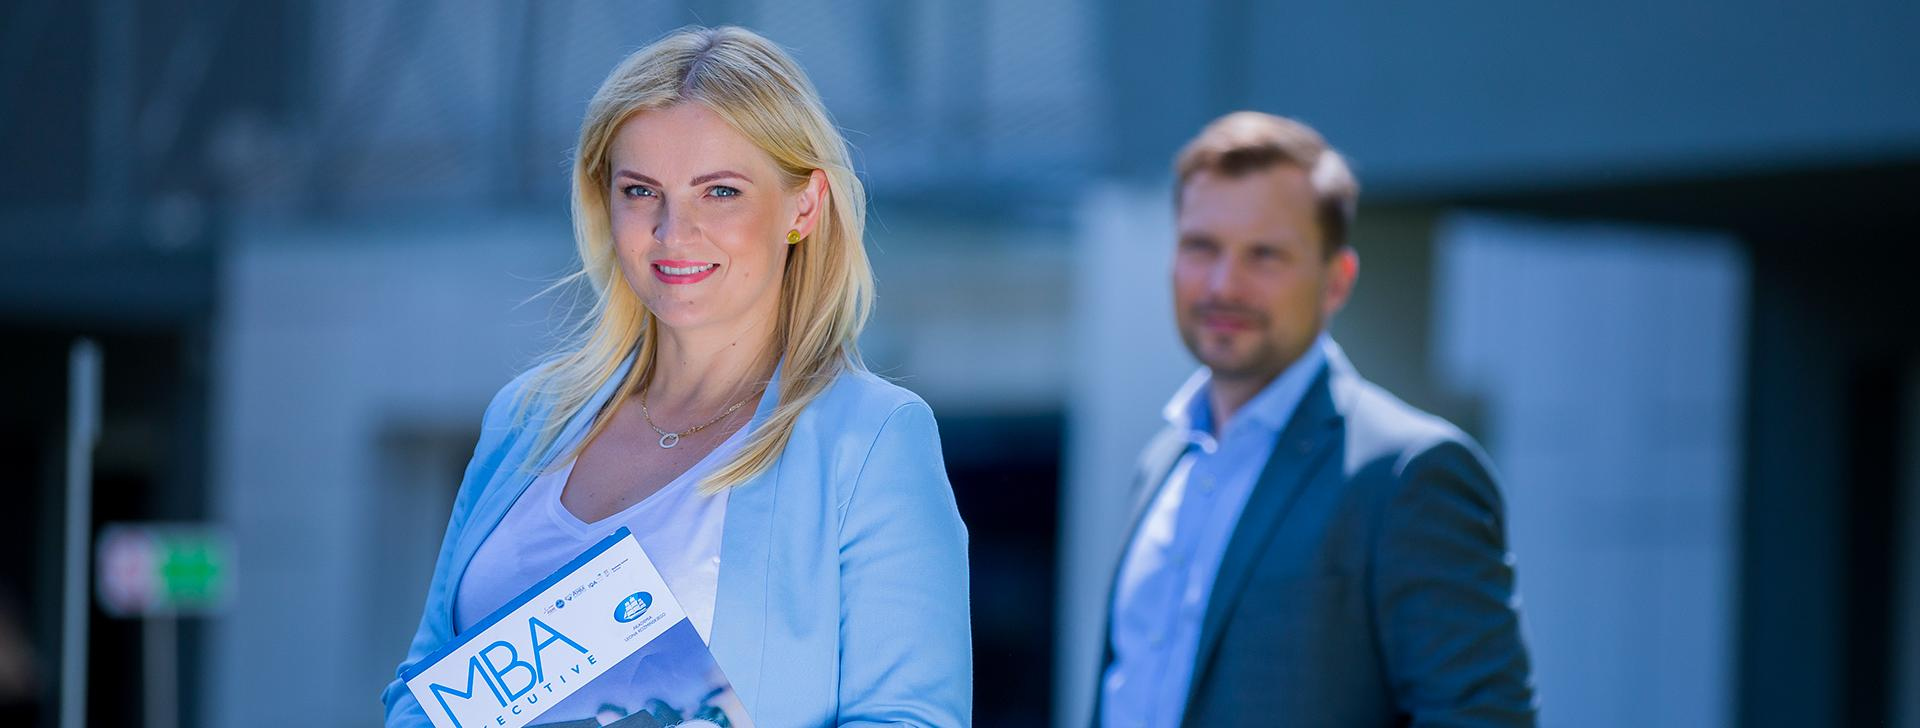 Executive MBA Minsk